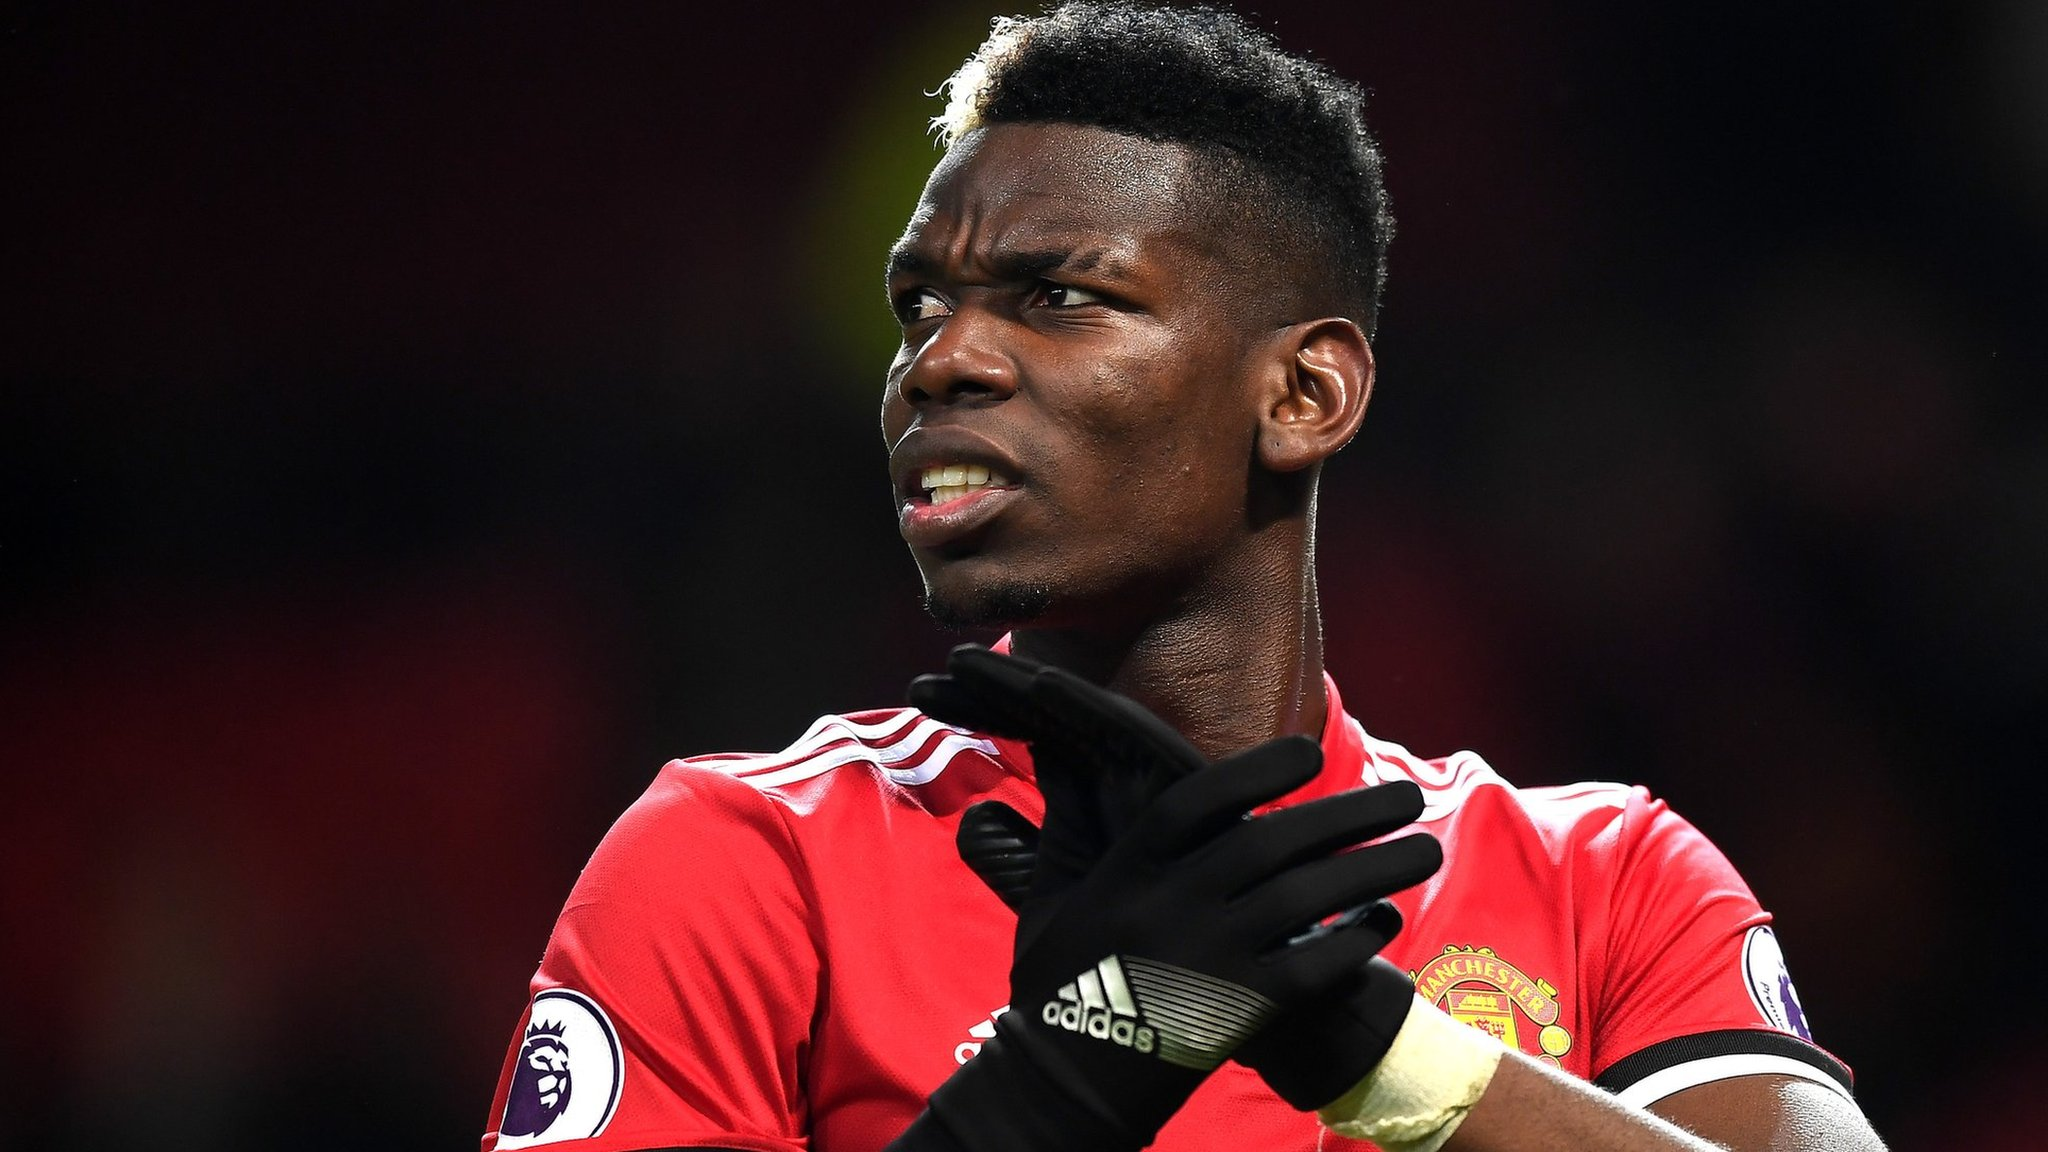 Real Madrid want Pogba - Friday's gossip